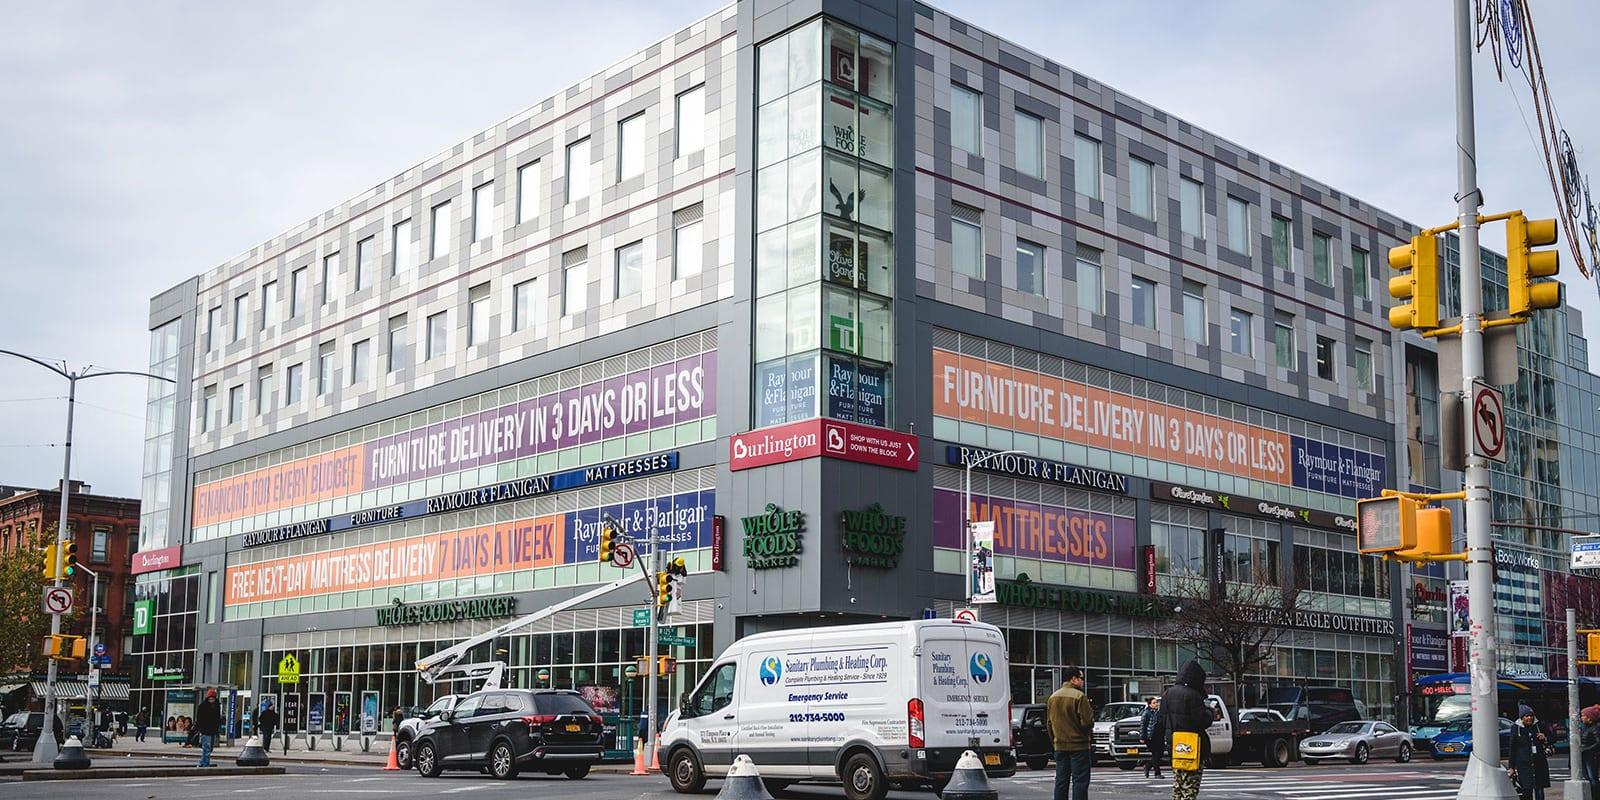 A small shopping center being built in Harlem